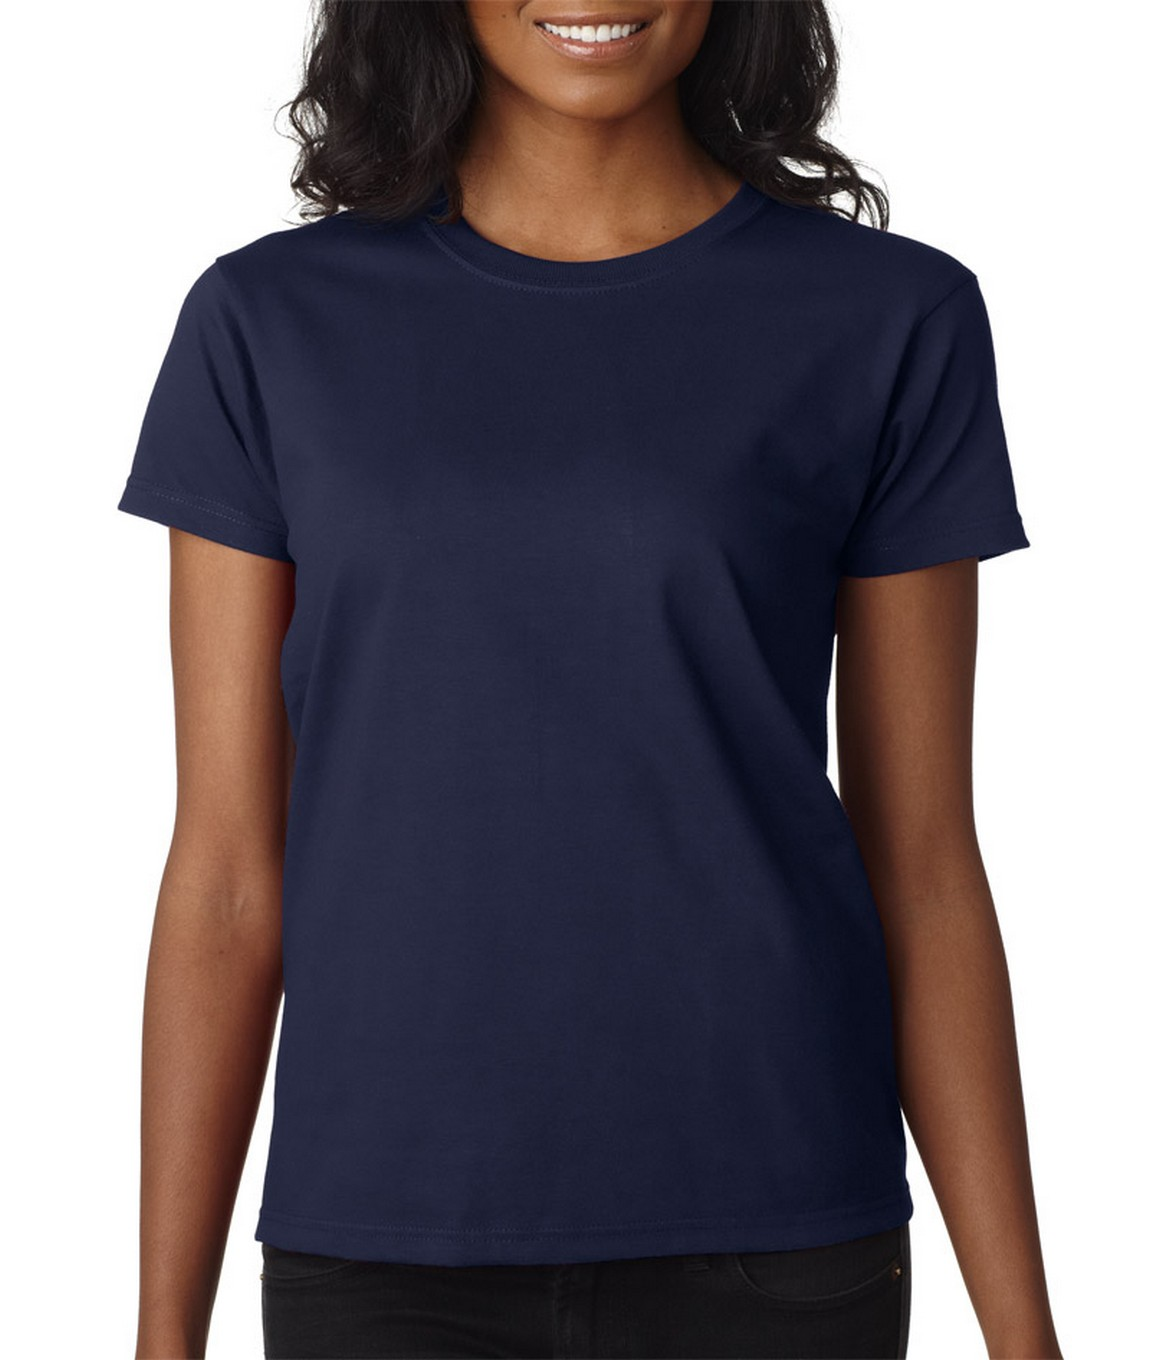 Navy Womens Shirt | Artee Shirt